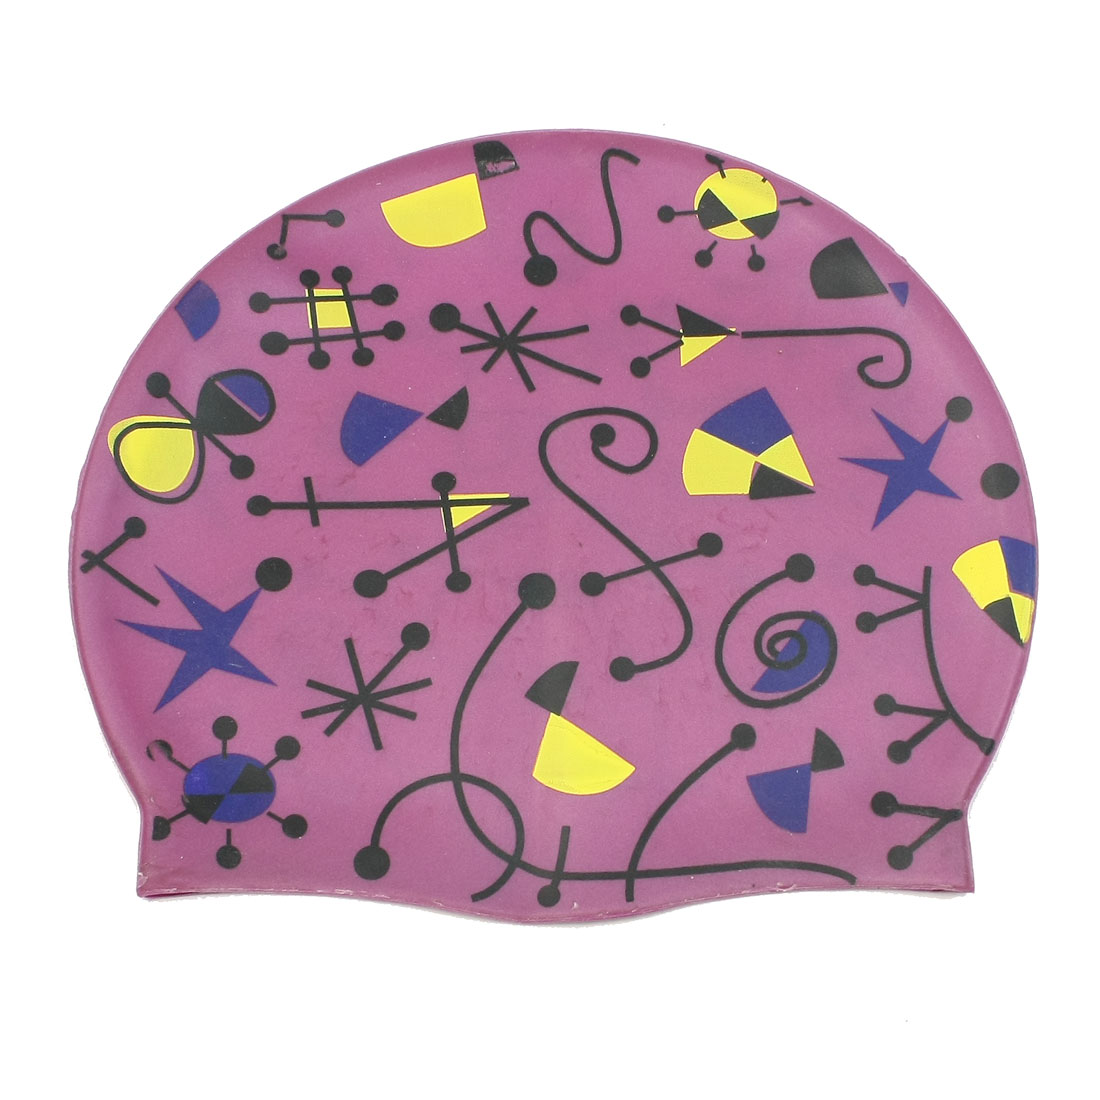 Adult Elastic Stretched Silicone Swimming Cap Purple